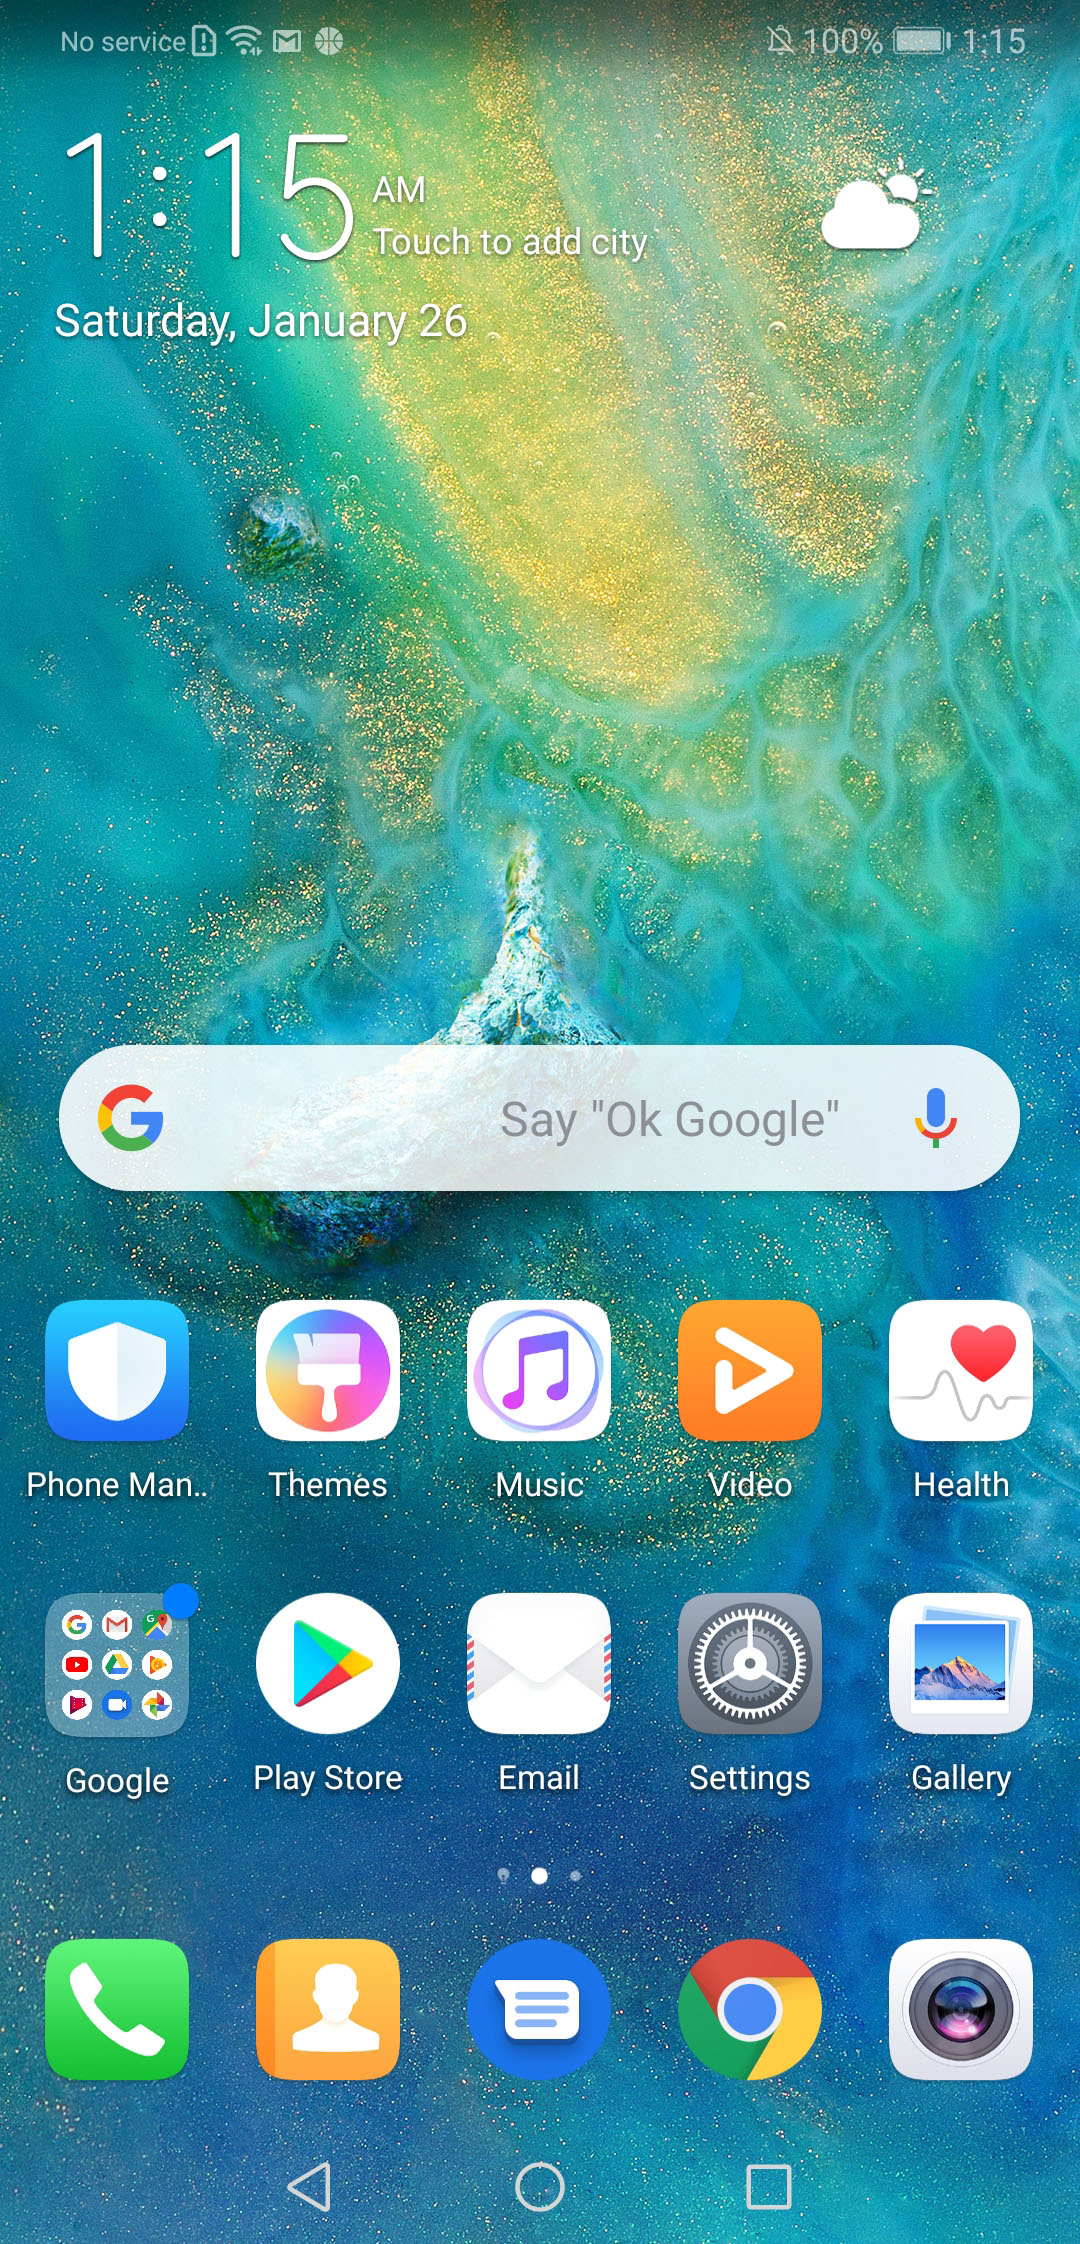 big_huawei_mate_20_homescreen.jpg